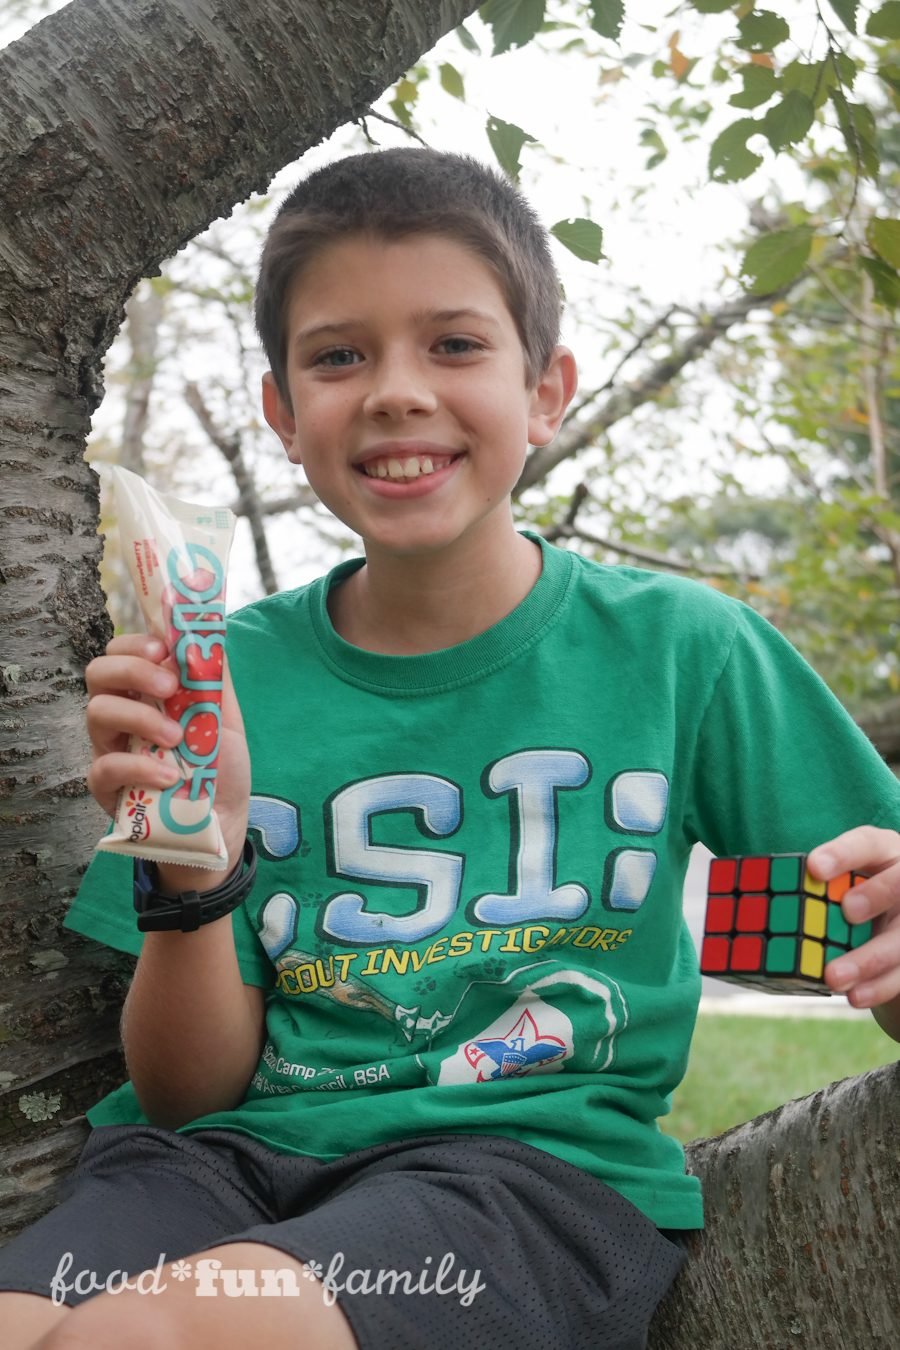 Yoplait Go Big challenges parents to share why their teen or tween is amazing!